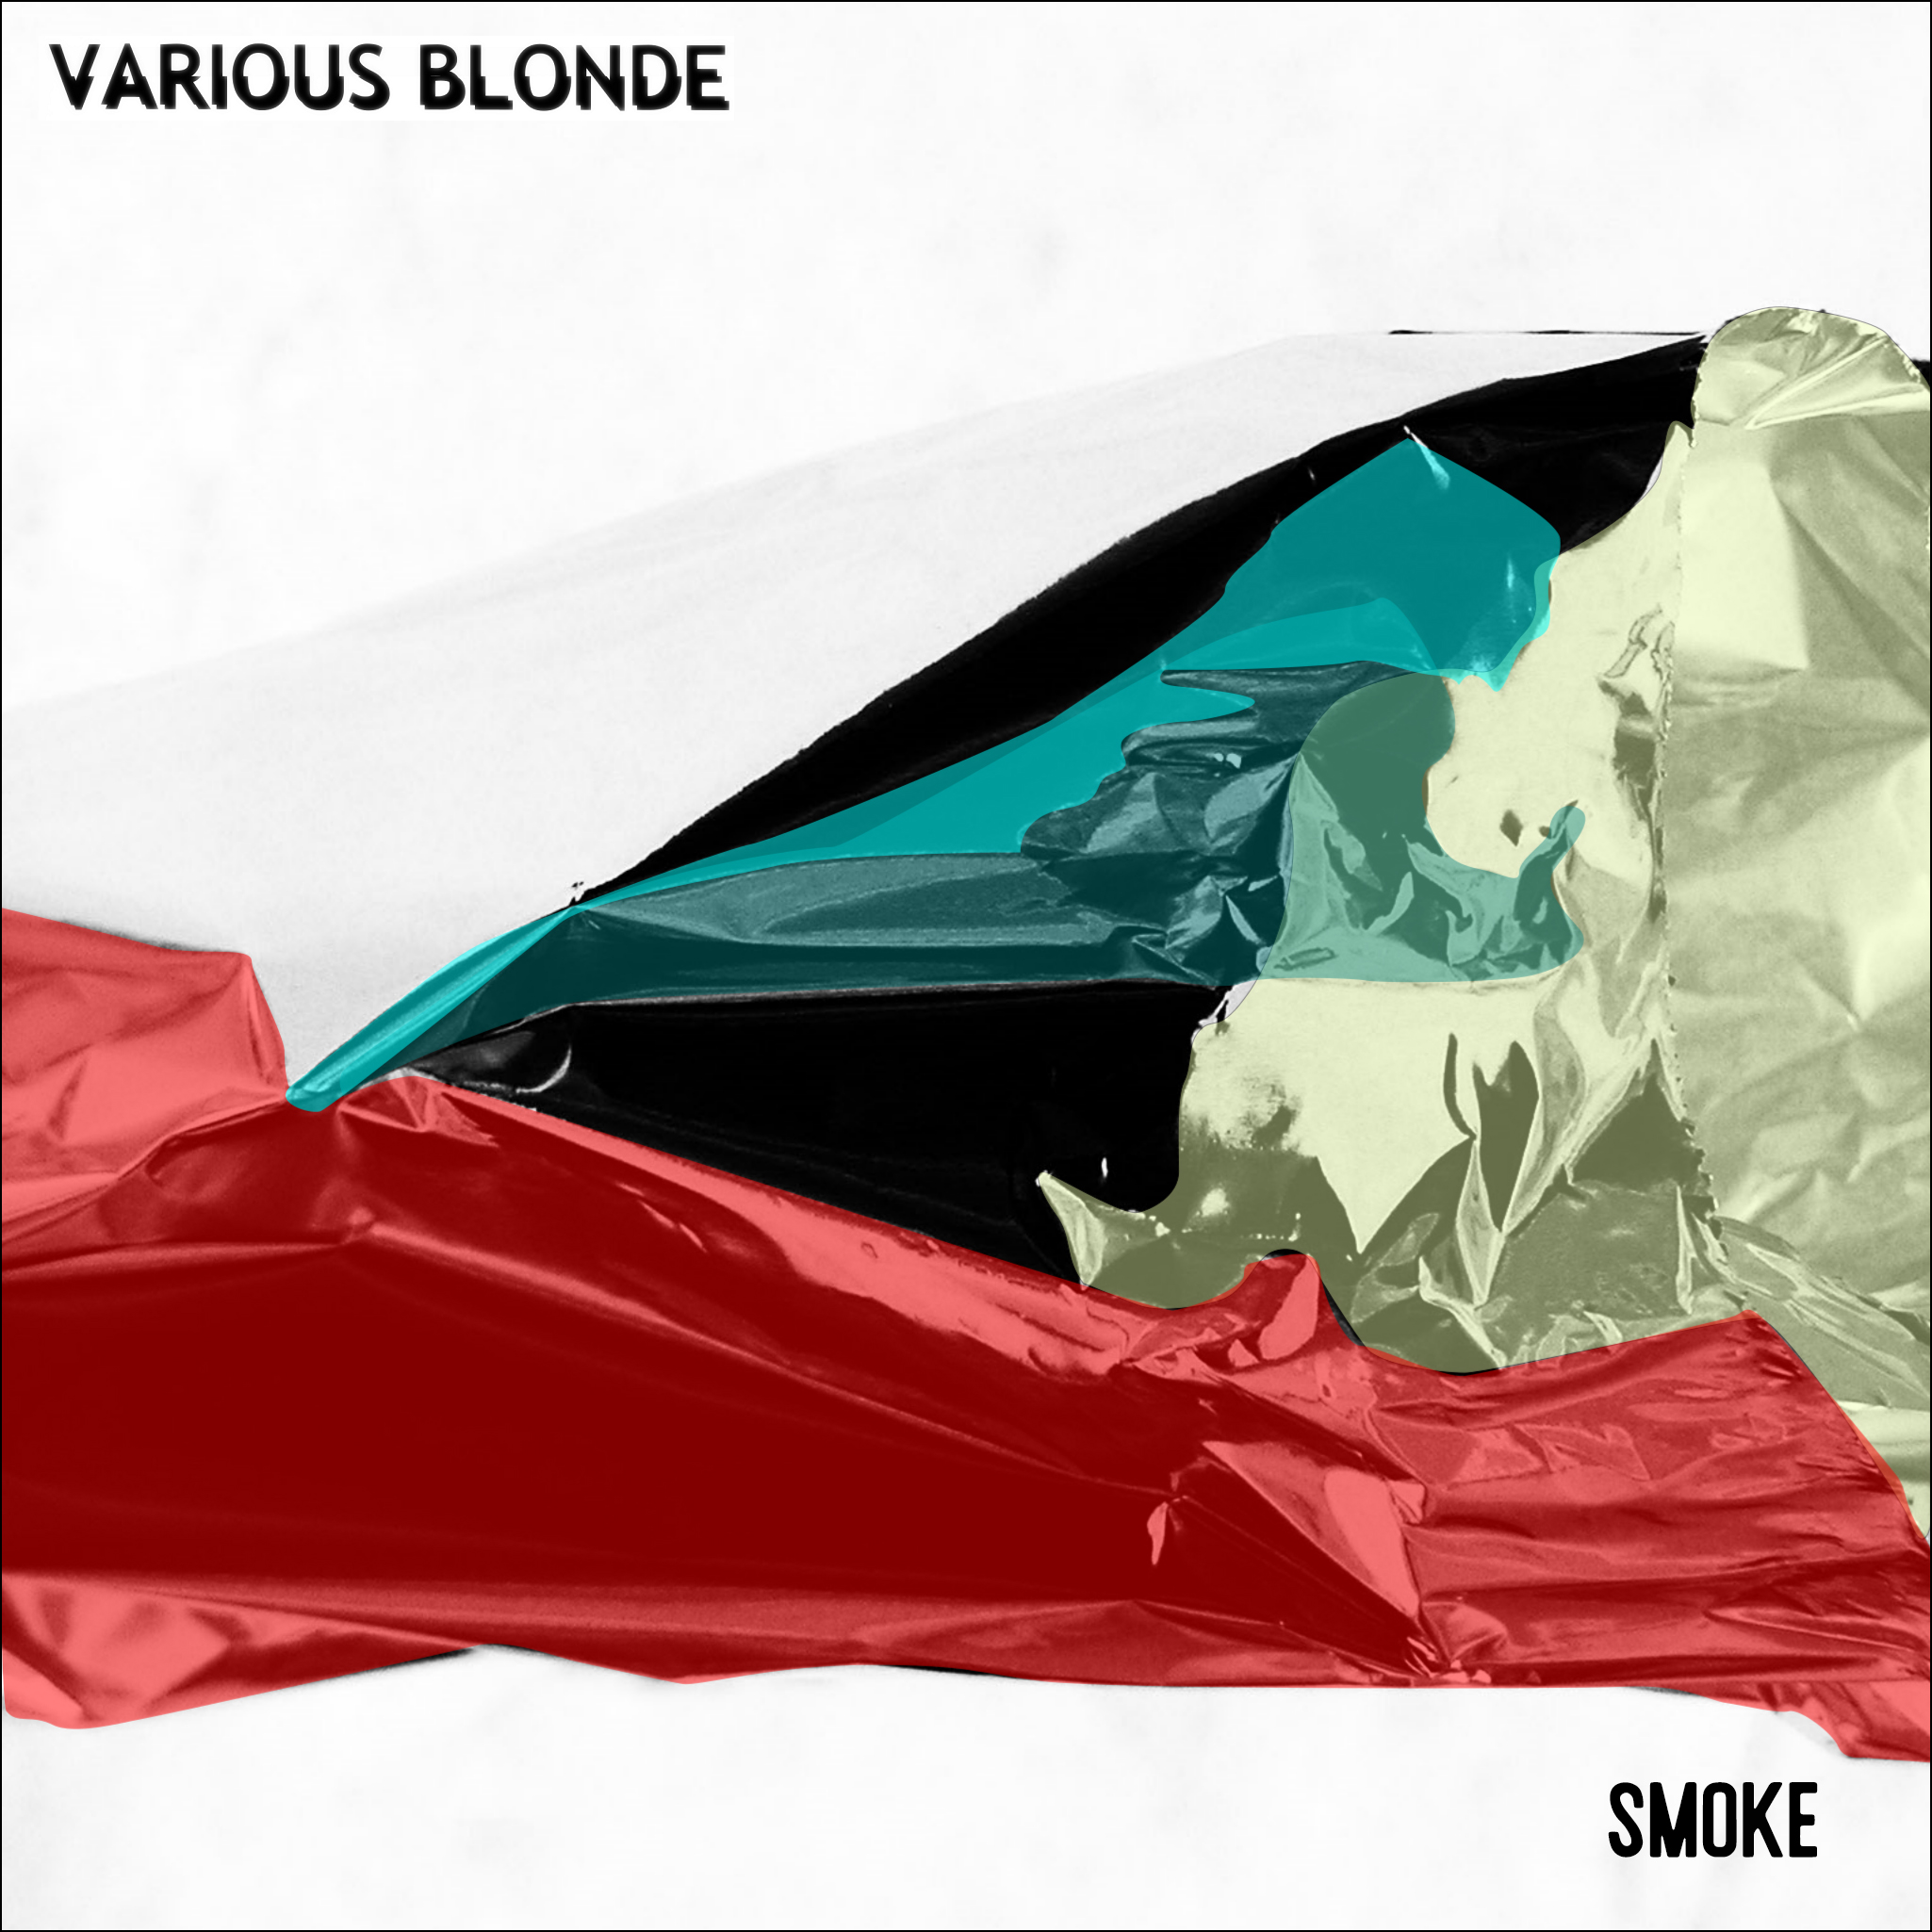 Various Blonde - Smoke